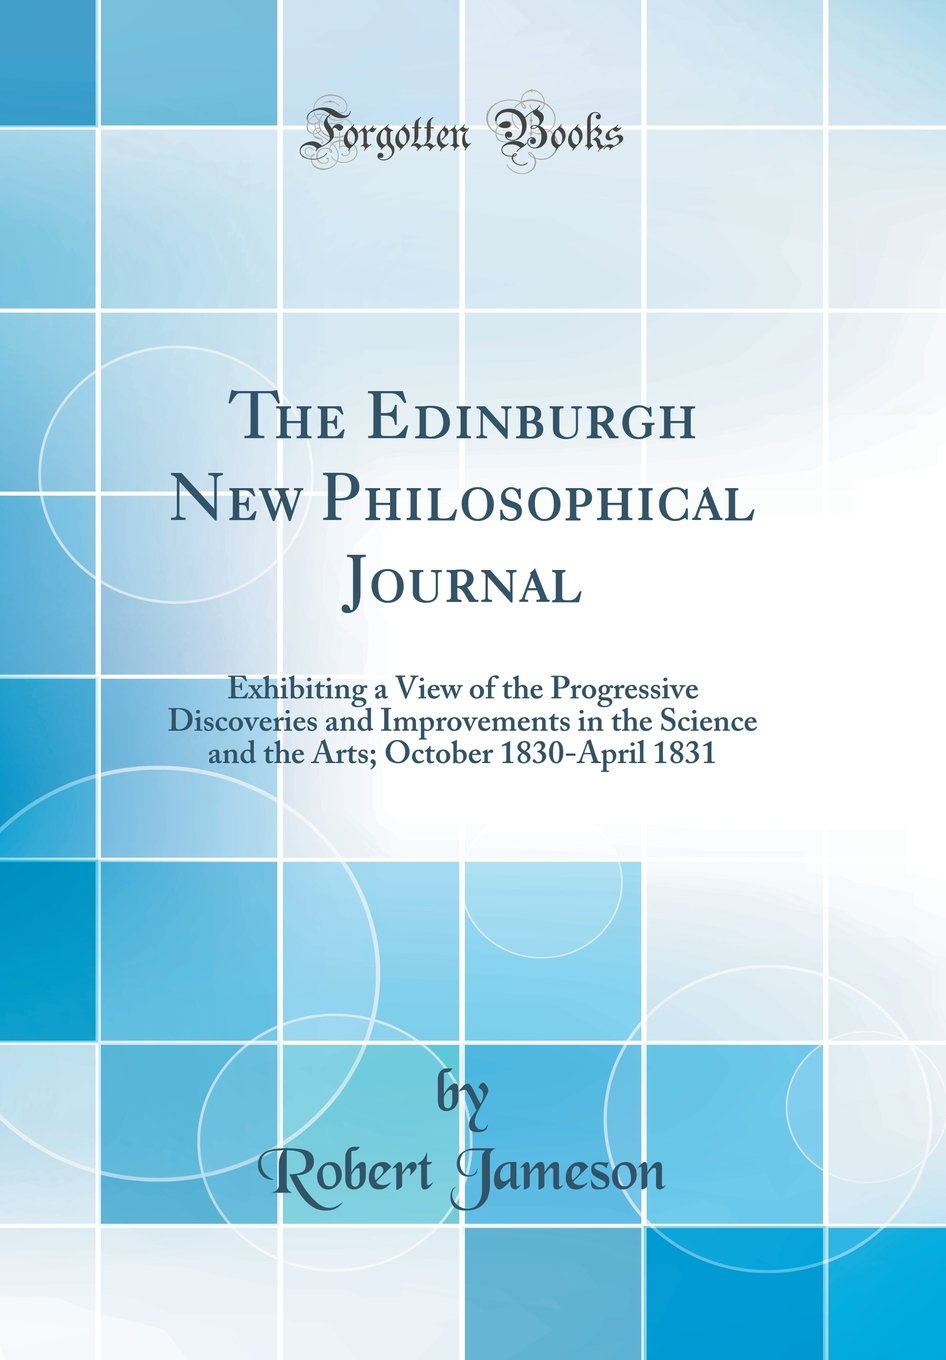 The Edinburgh New Philosophical Journal: Exhibiting a View of the Progressive Discoveries and Improvements in the Science and the Arts; October 1830-April 1831 (Classic Reprint) pdf